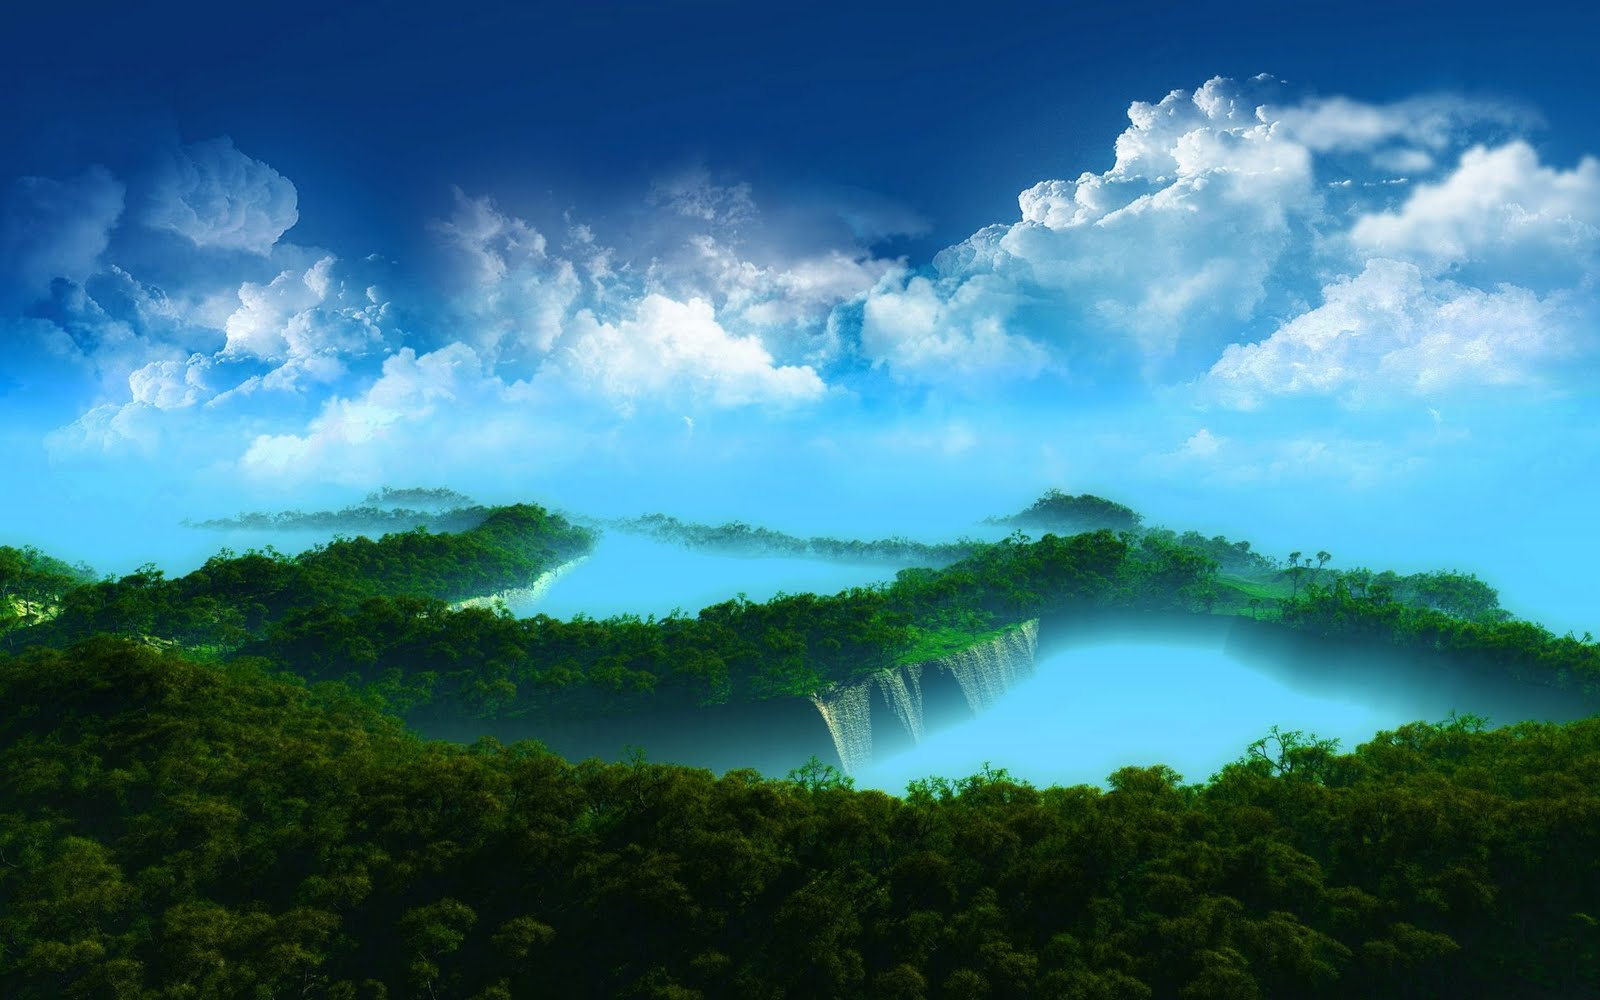 nature live wallpaper for pc - sf wallpaper